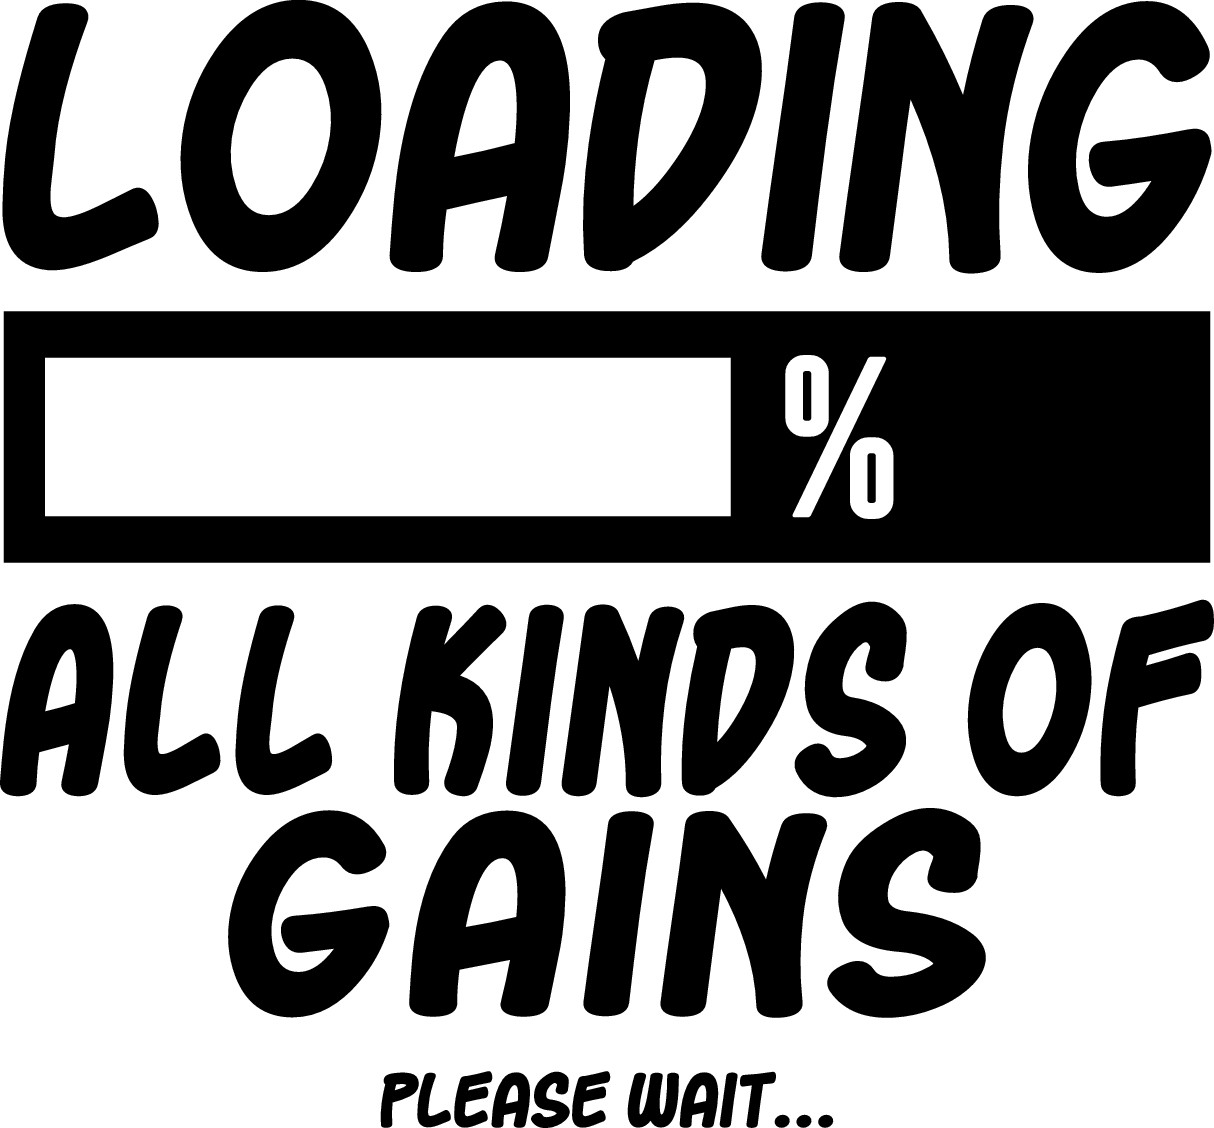 INSTALLING ALL KINDS OF GAINS PLEASE WAIT T-SHIRT